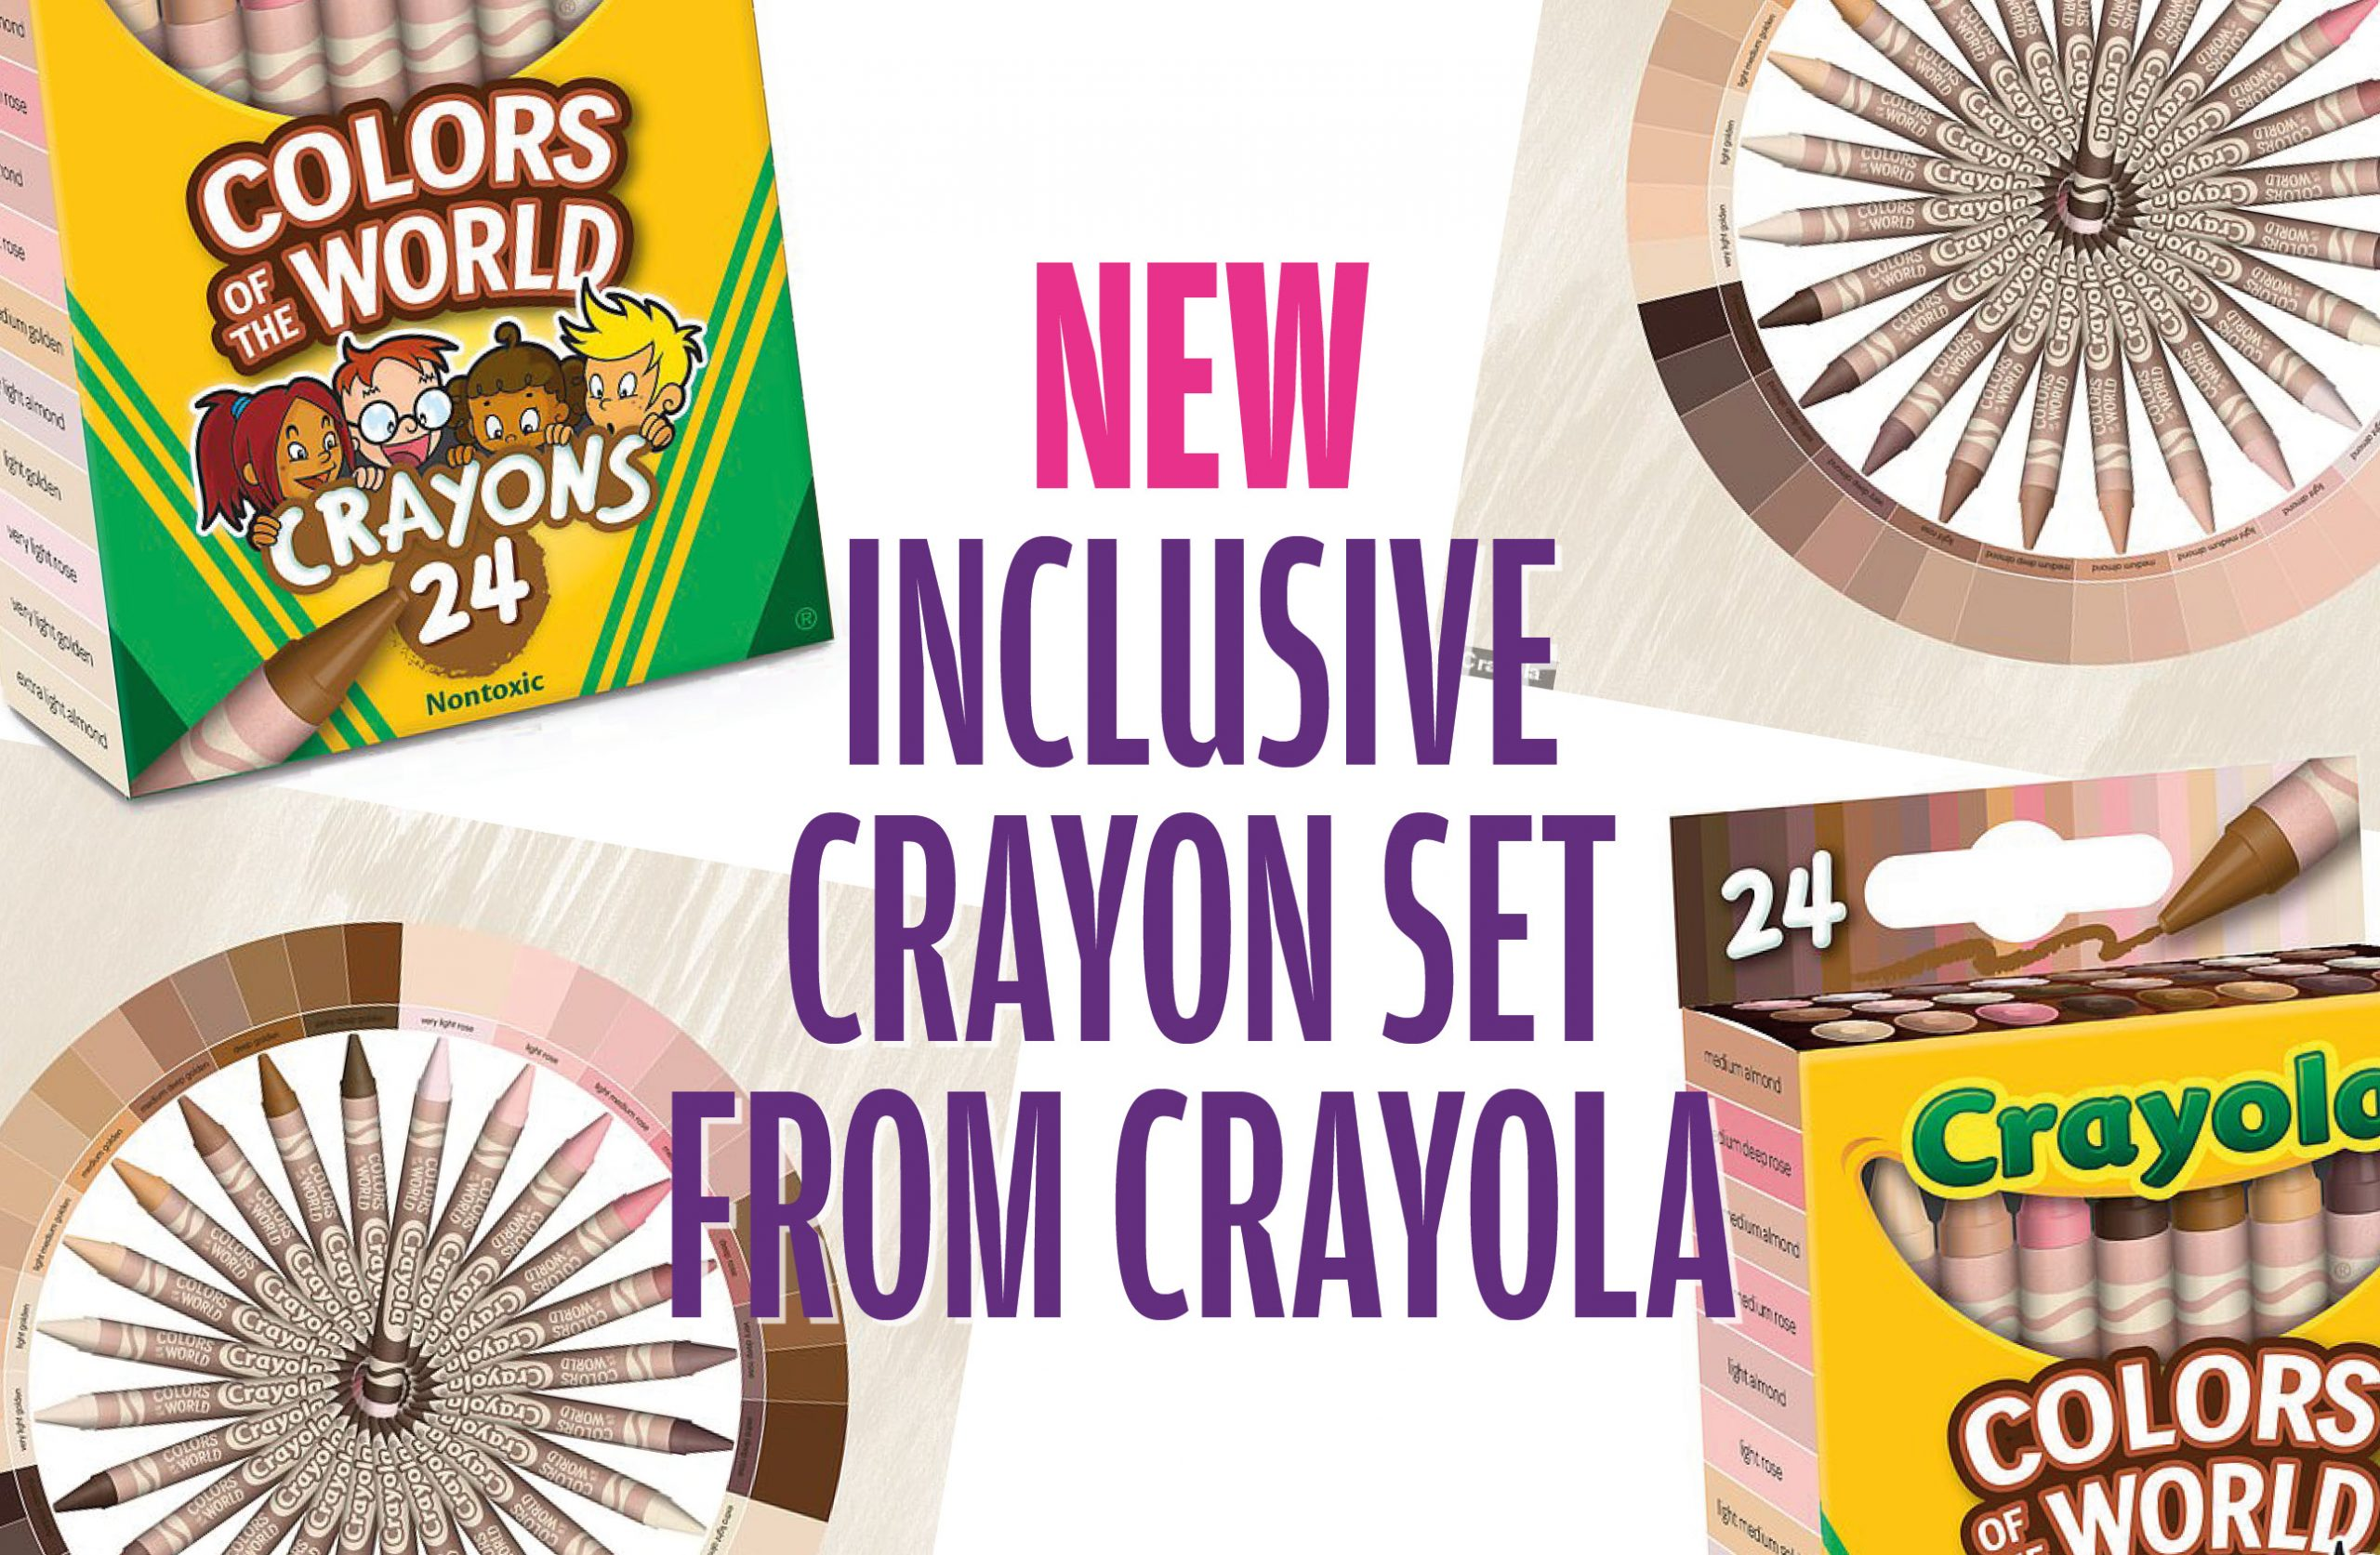 Crayola launch Colors of the World skin tone crayons